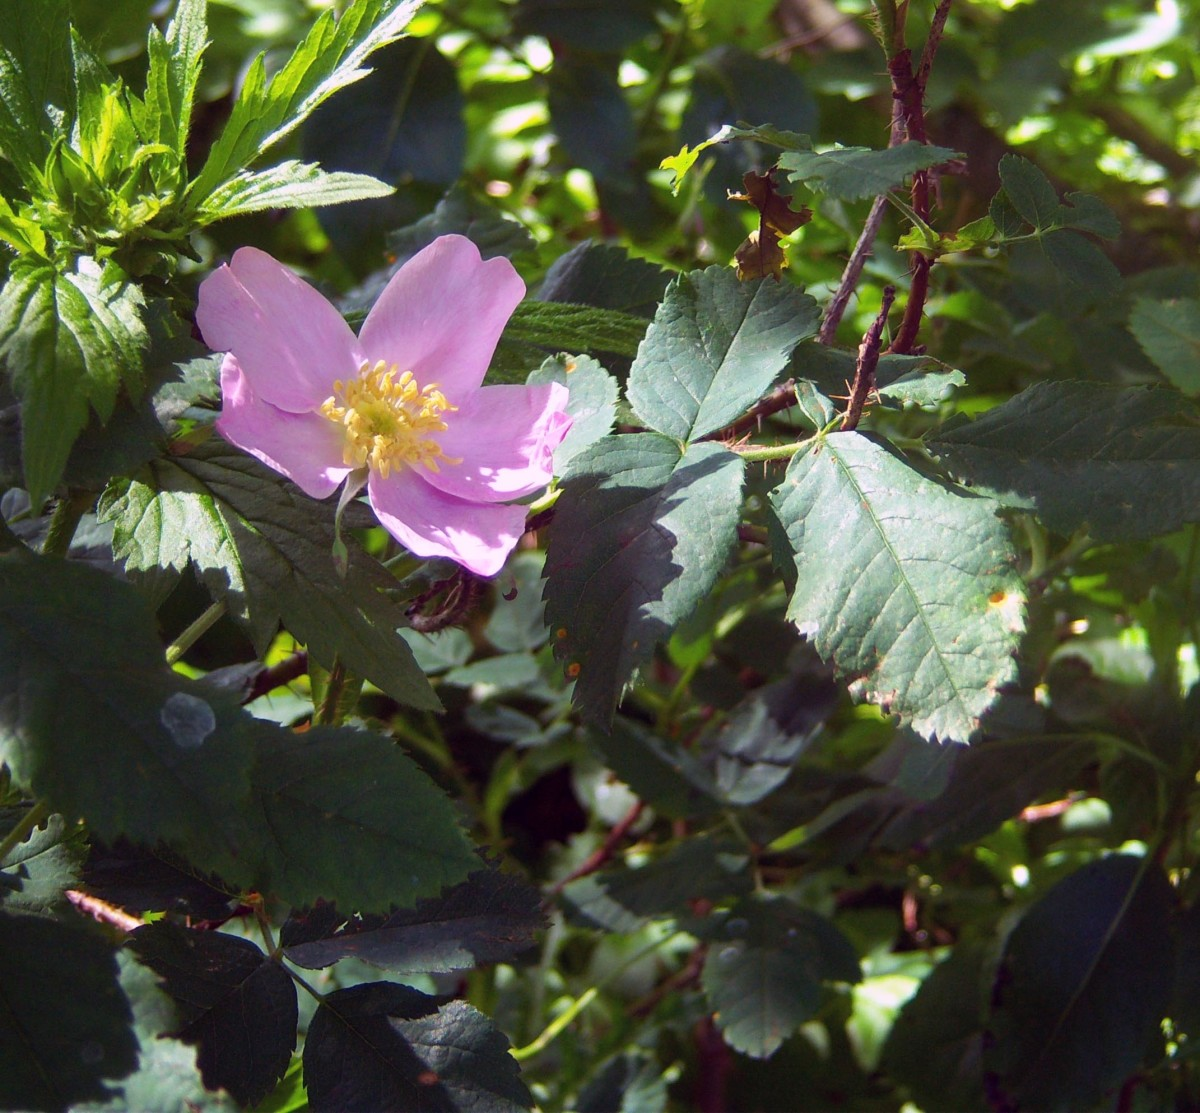 One of the many wild roses blooming during our 2014 trip to the Minnesota shore of Lake Superior.